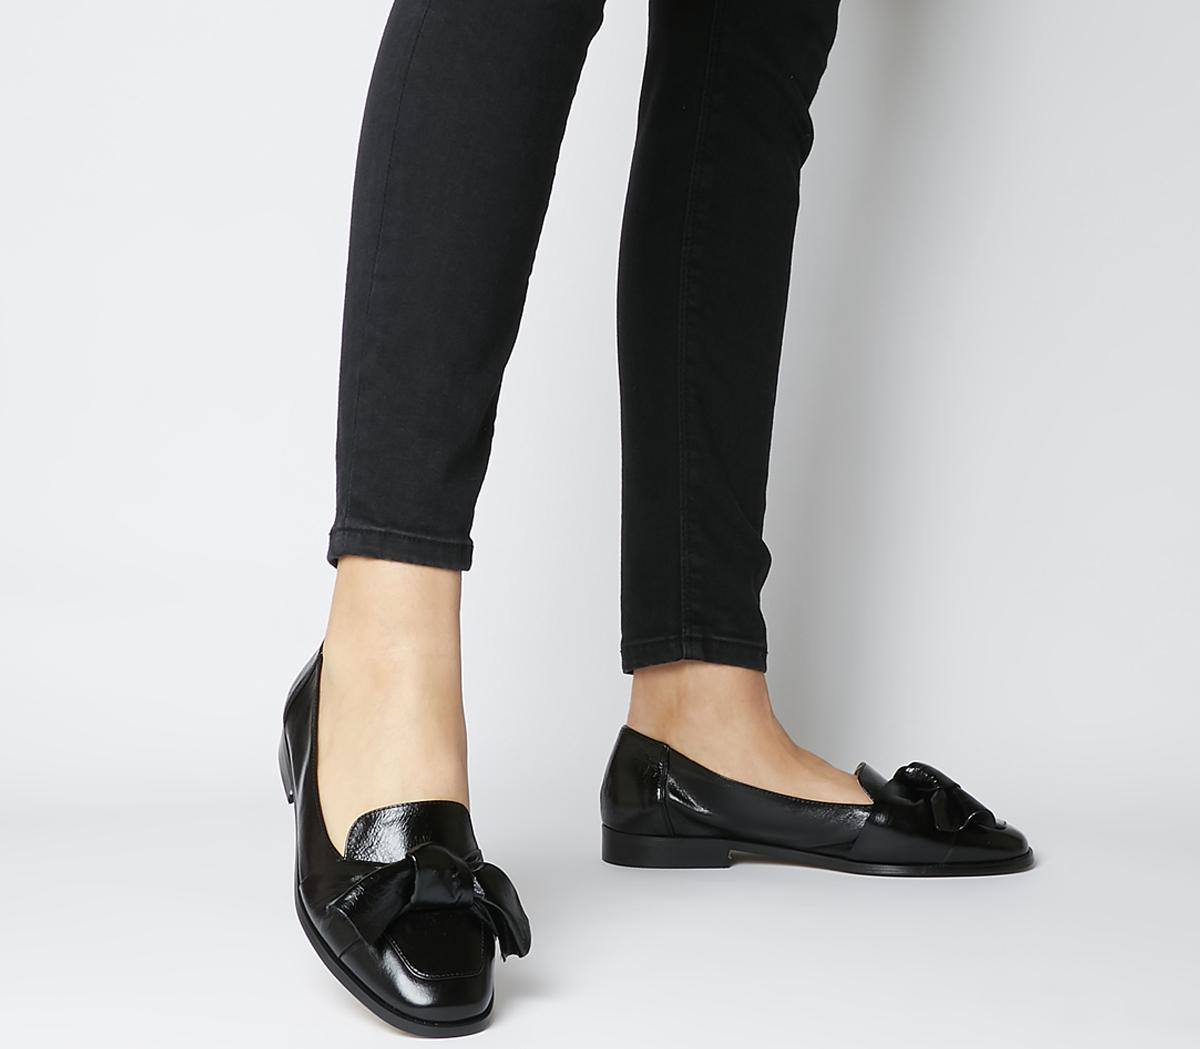 Filly Bow Loafers Black Leather Black Sole